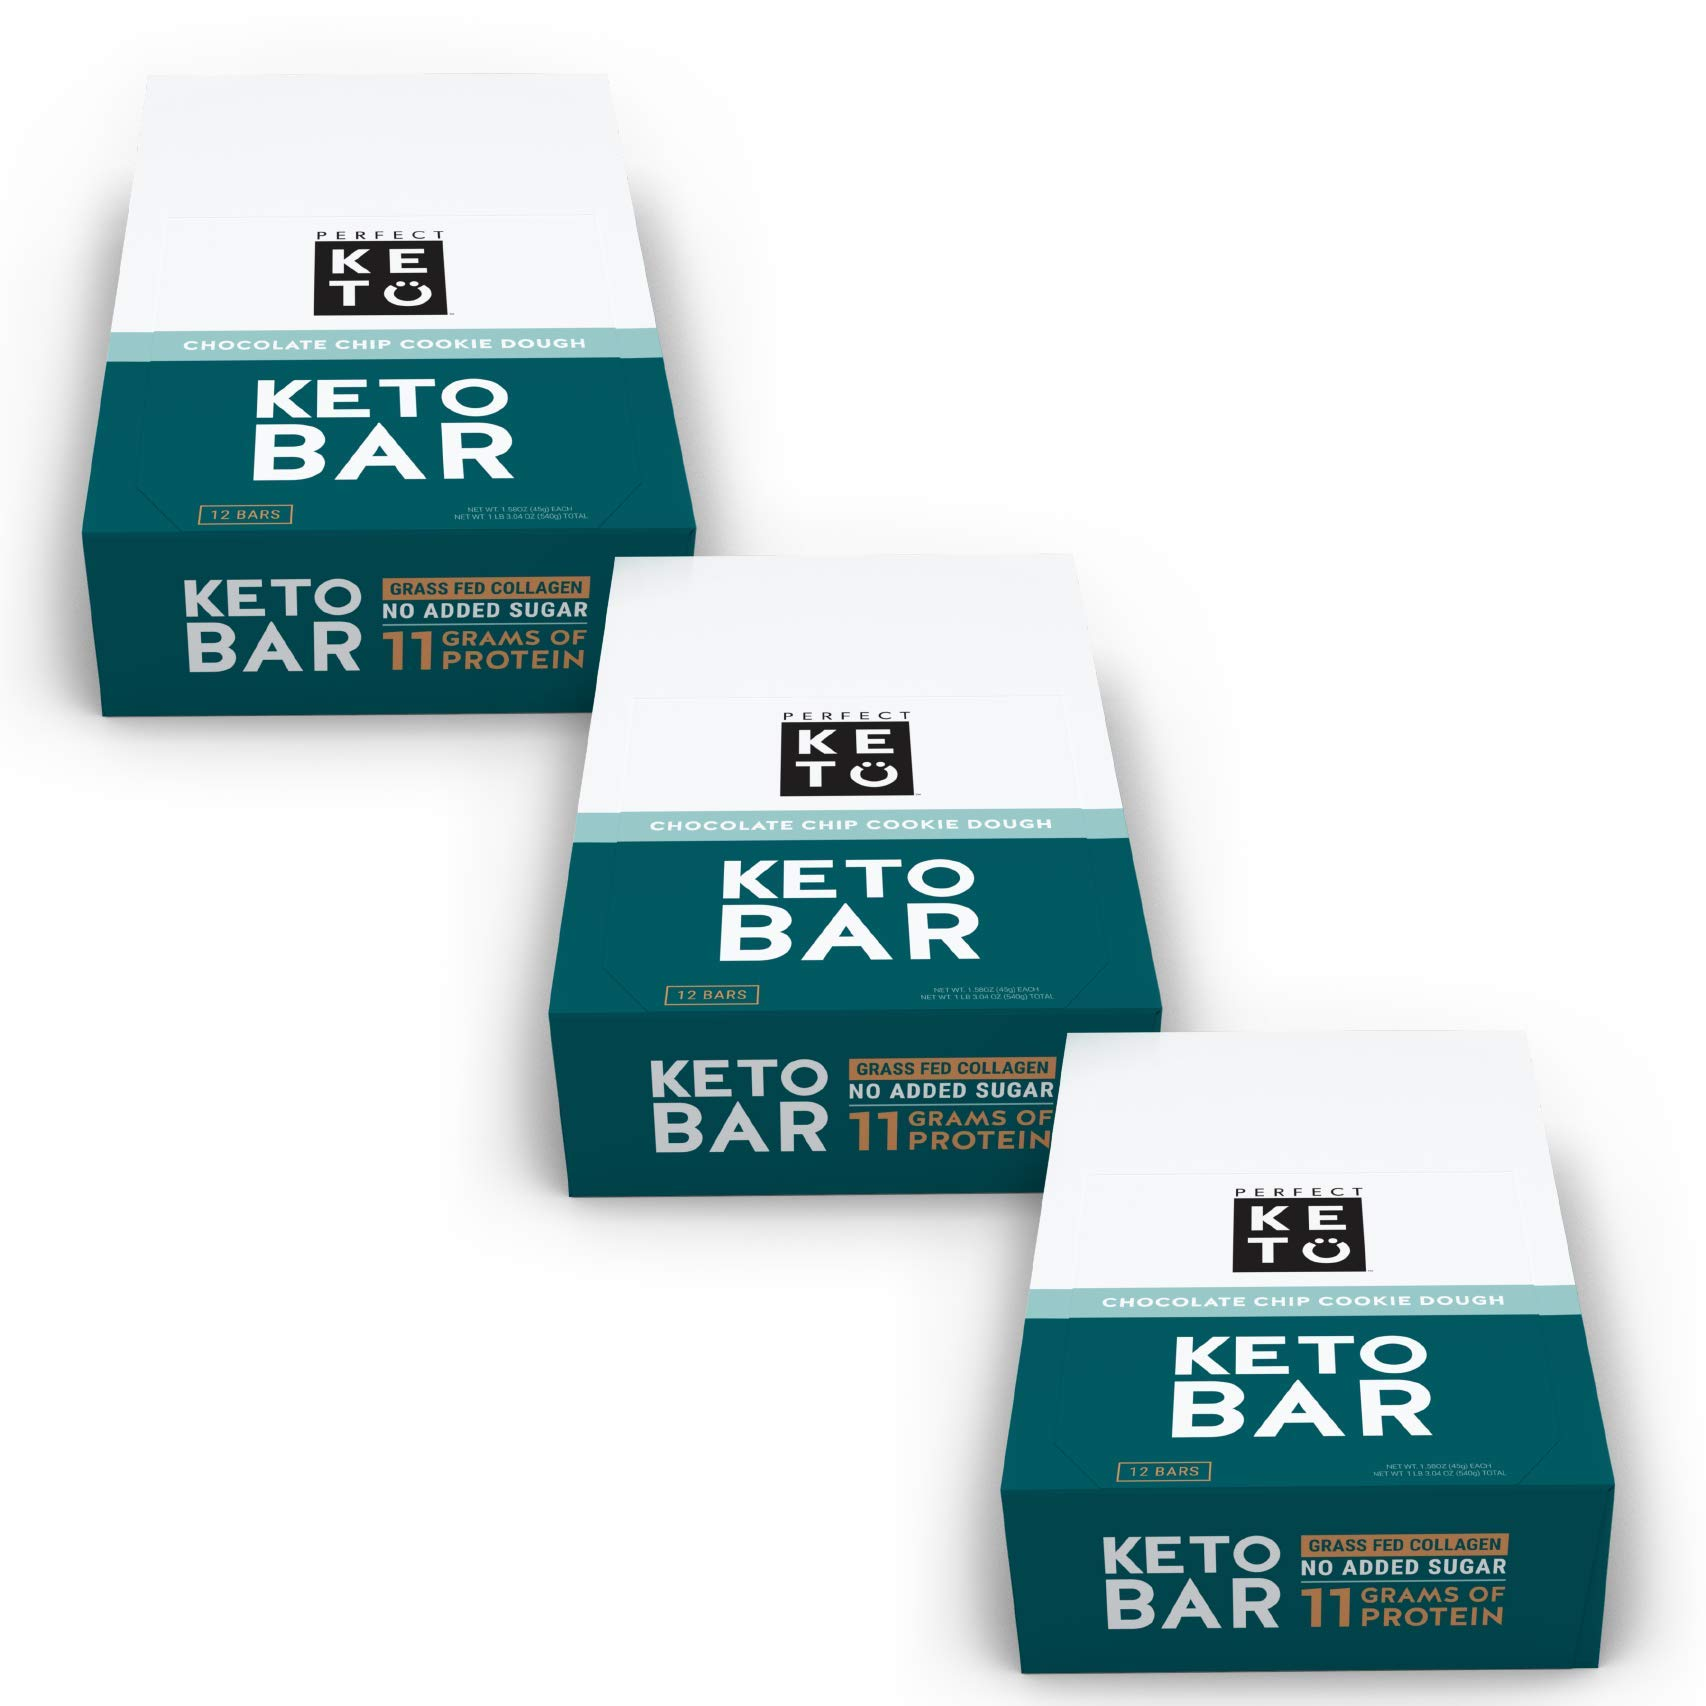 New! Perfect Keto Bar, Keto Snack (12 Count), No Added Sugar. 10g of Protein, Coconut Oil, and Collagen, with a Touch of Sea Salt and Stevia. (36 Bars (3 Boxes), Choc Chip Cookie Dough)